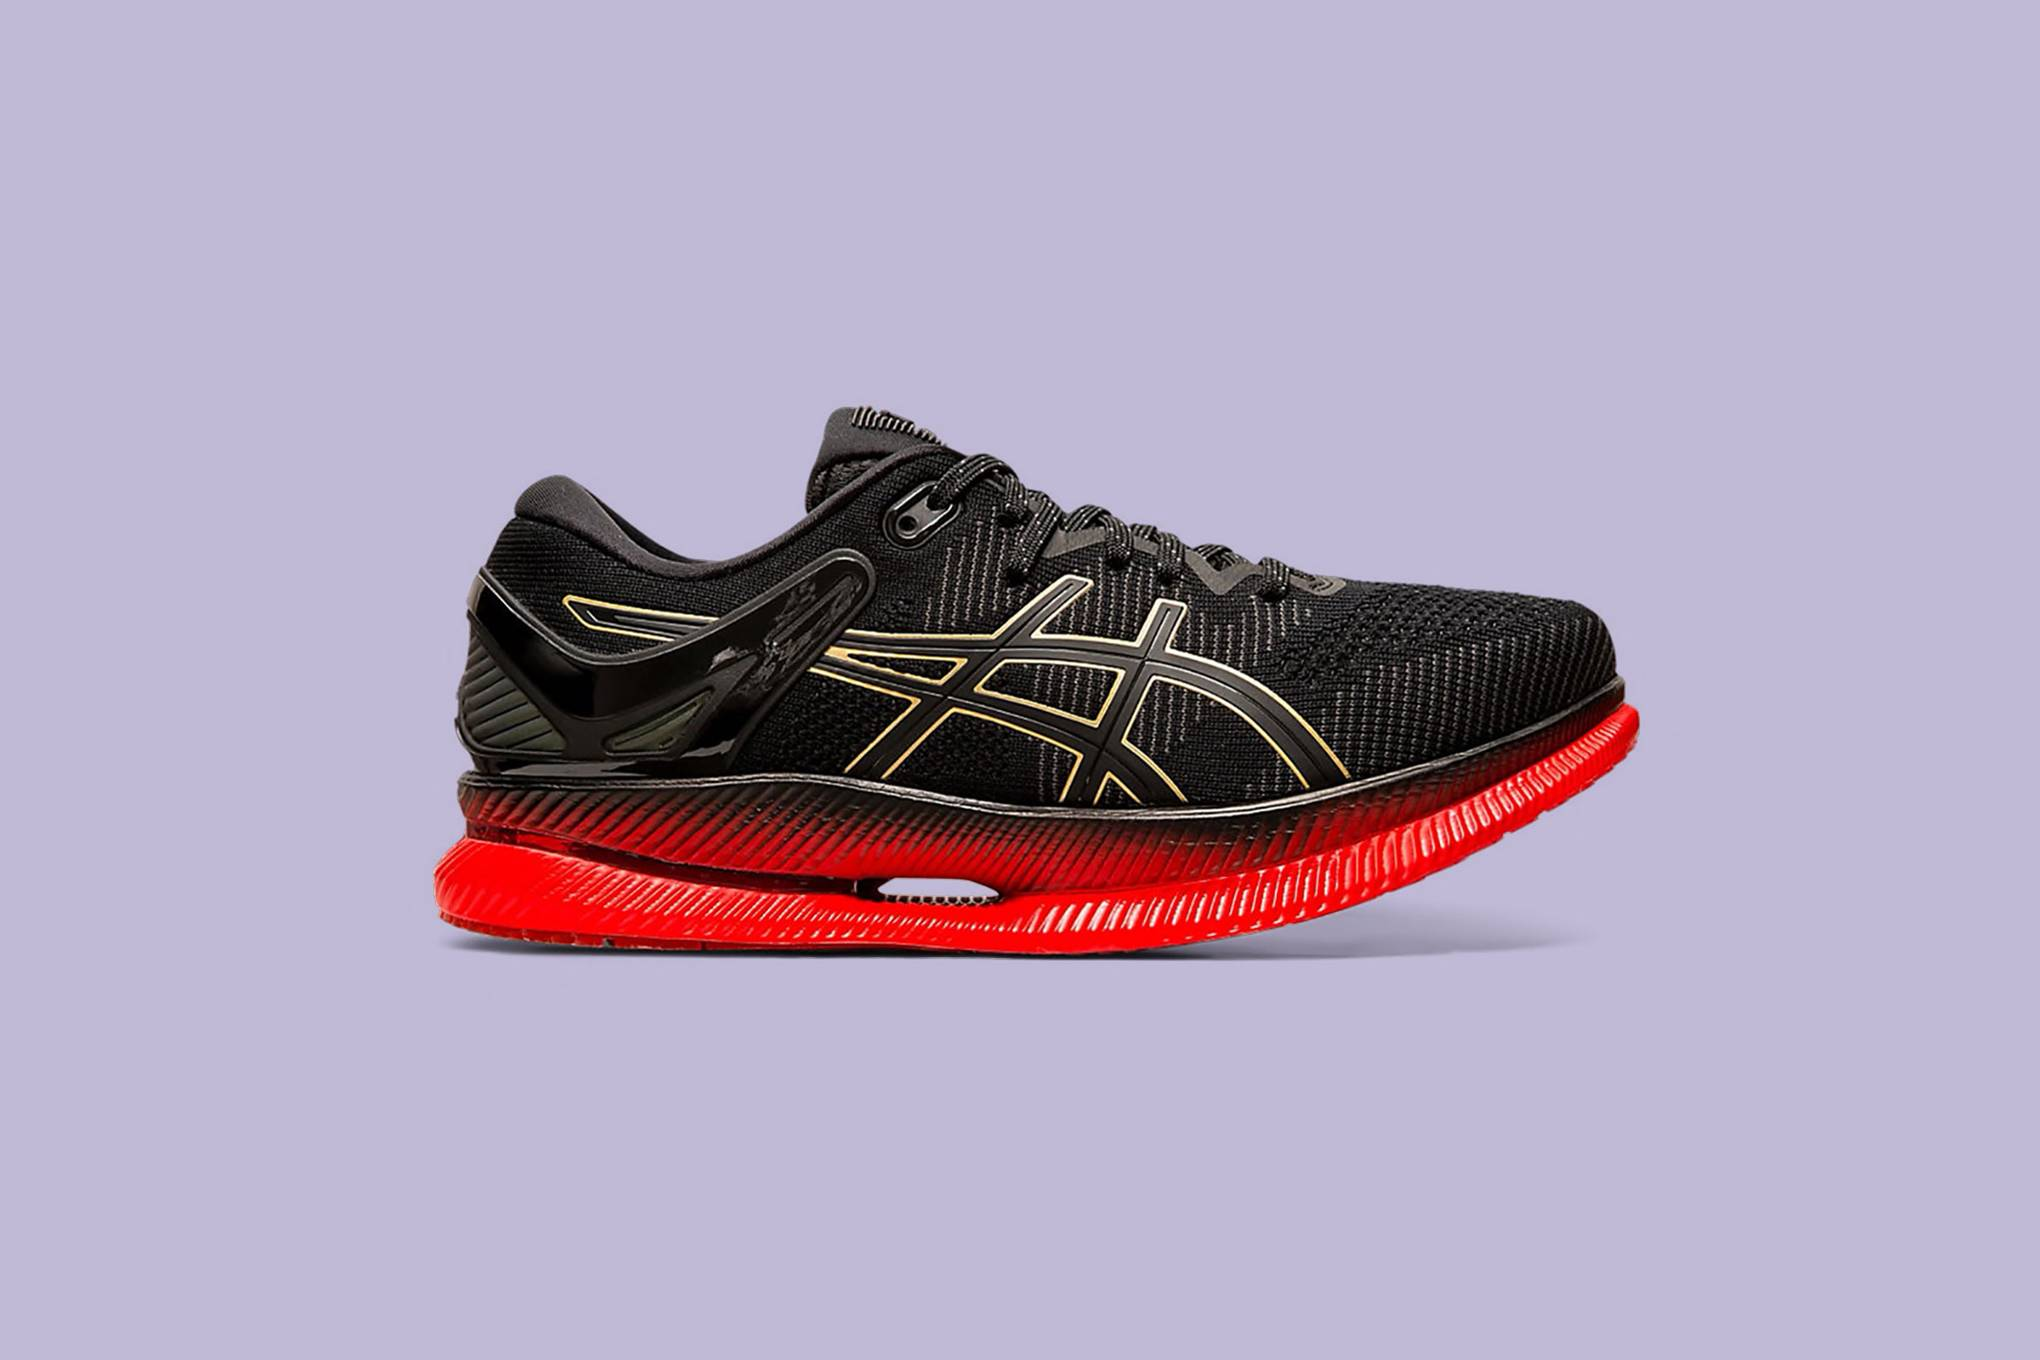 53ac74f902 The best running shoes you can buy in 2019 | WIRED UK